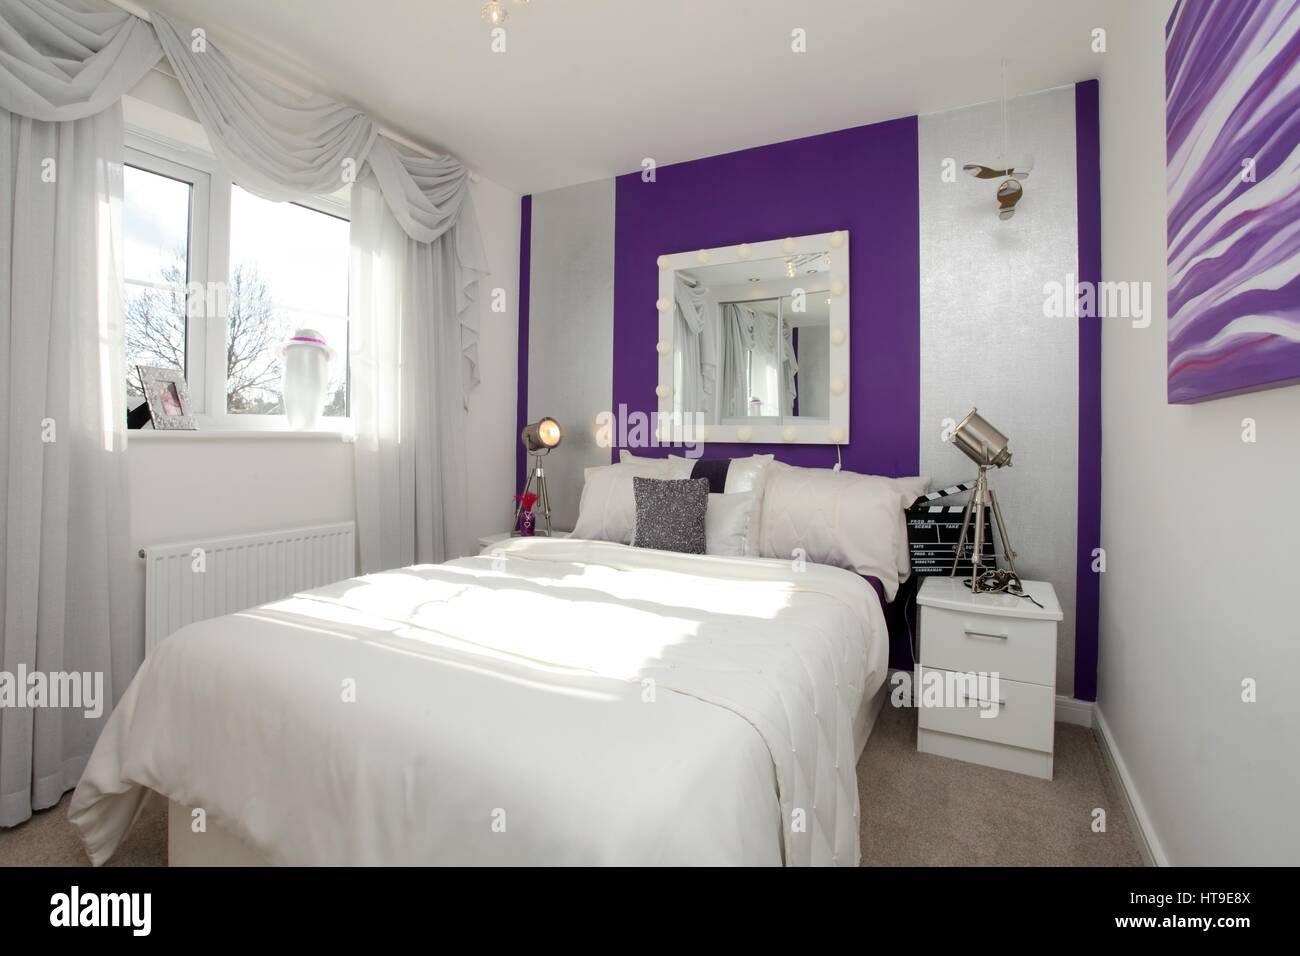 purple feature wall bedroom our home ideas purple feature wall in bedroom www indiepedia org 811